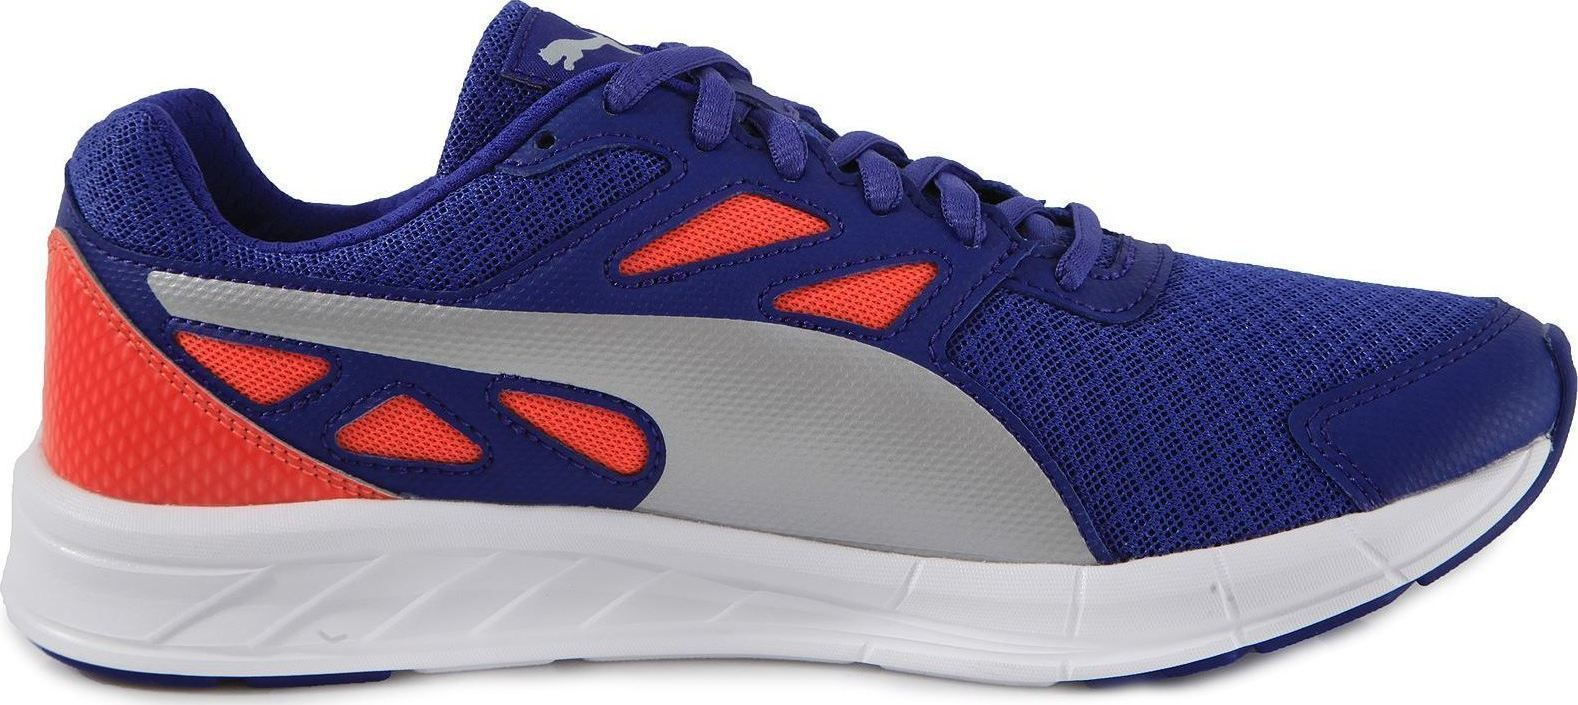 Scarpetta Puma Womans Driver Royal Blue-Silver-Red Blast TG 40